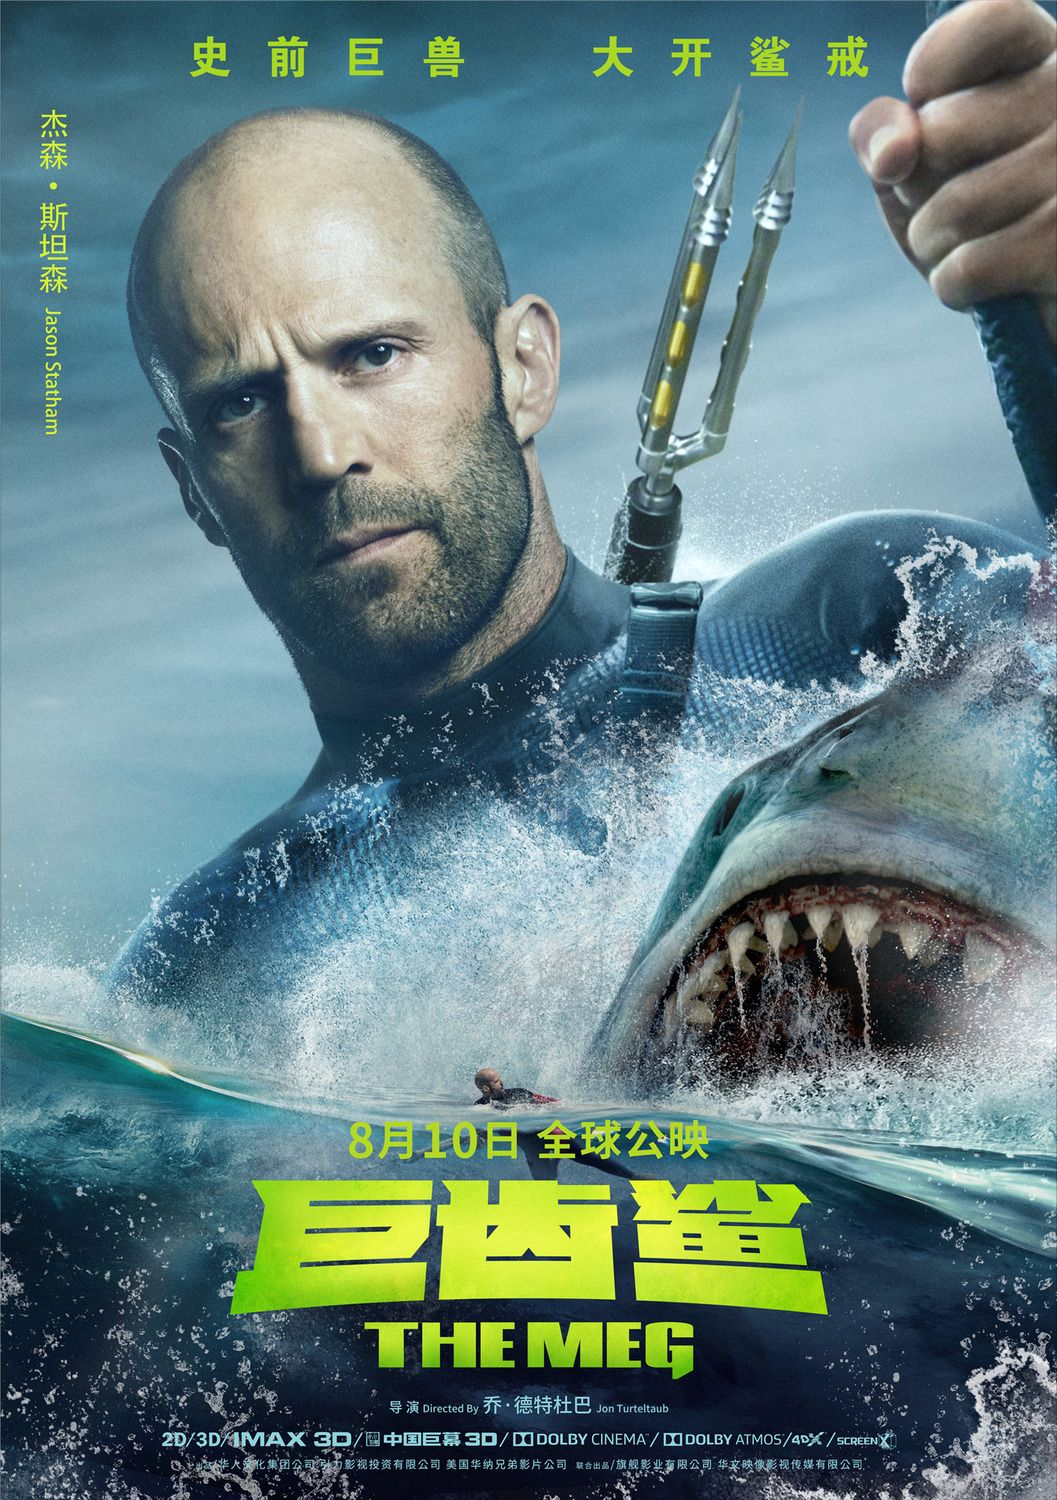 The Meg New Film Posters Https Teaser Trailer Com Movie Meg